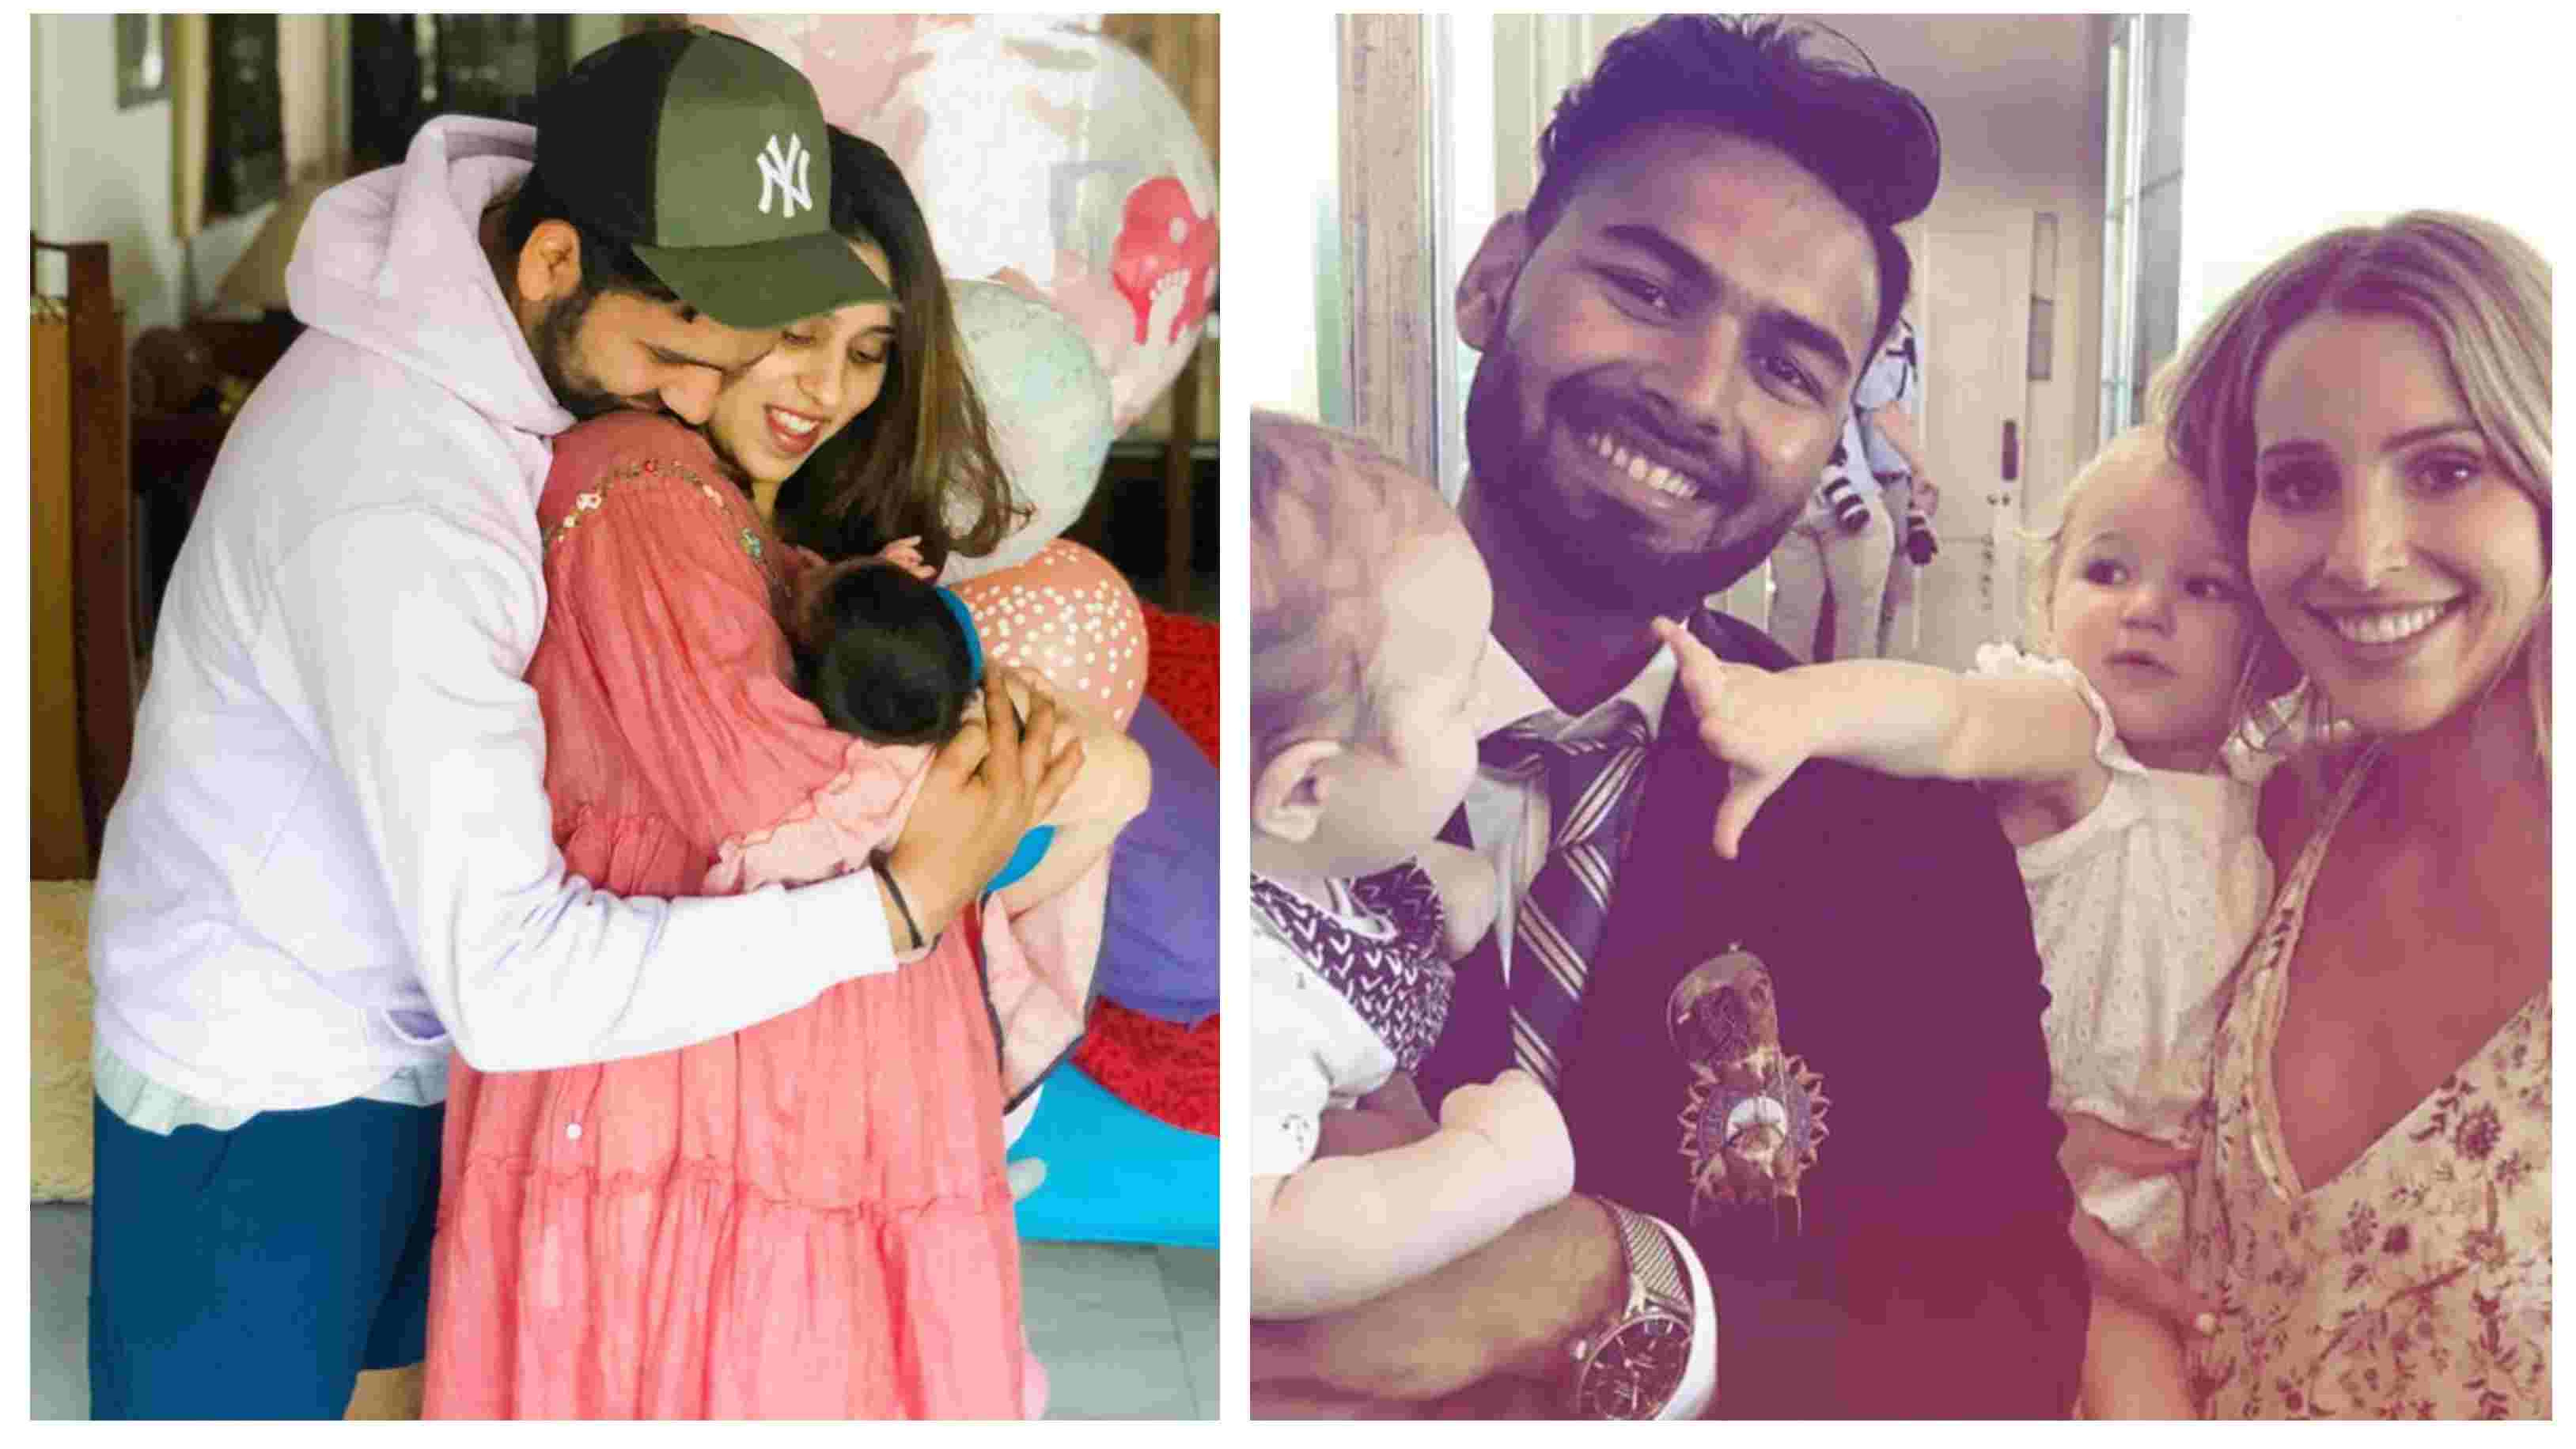 Rohit Sharma, Ritika Sajdeh ask Rishabh Pant to 'babysit' their daughter